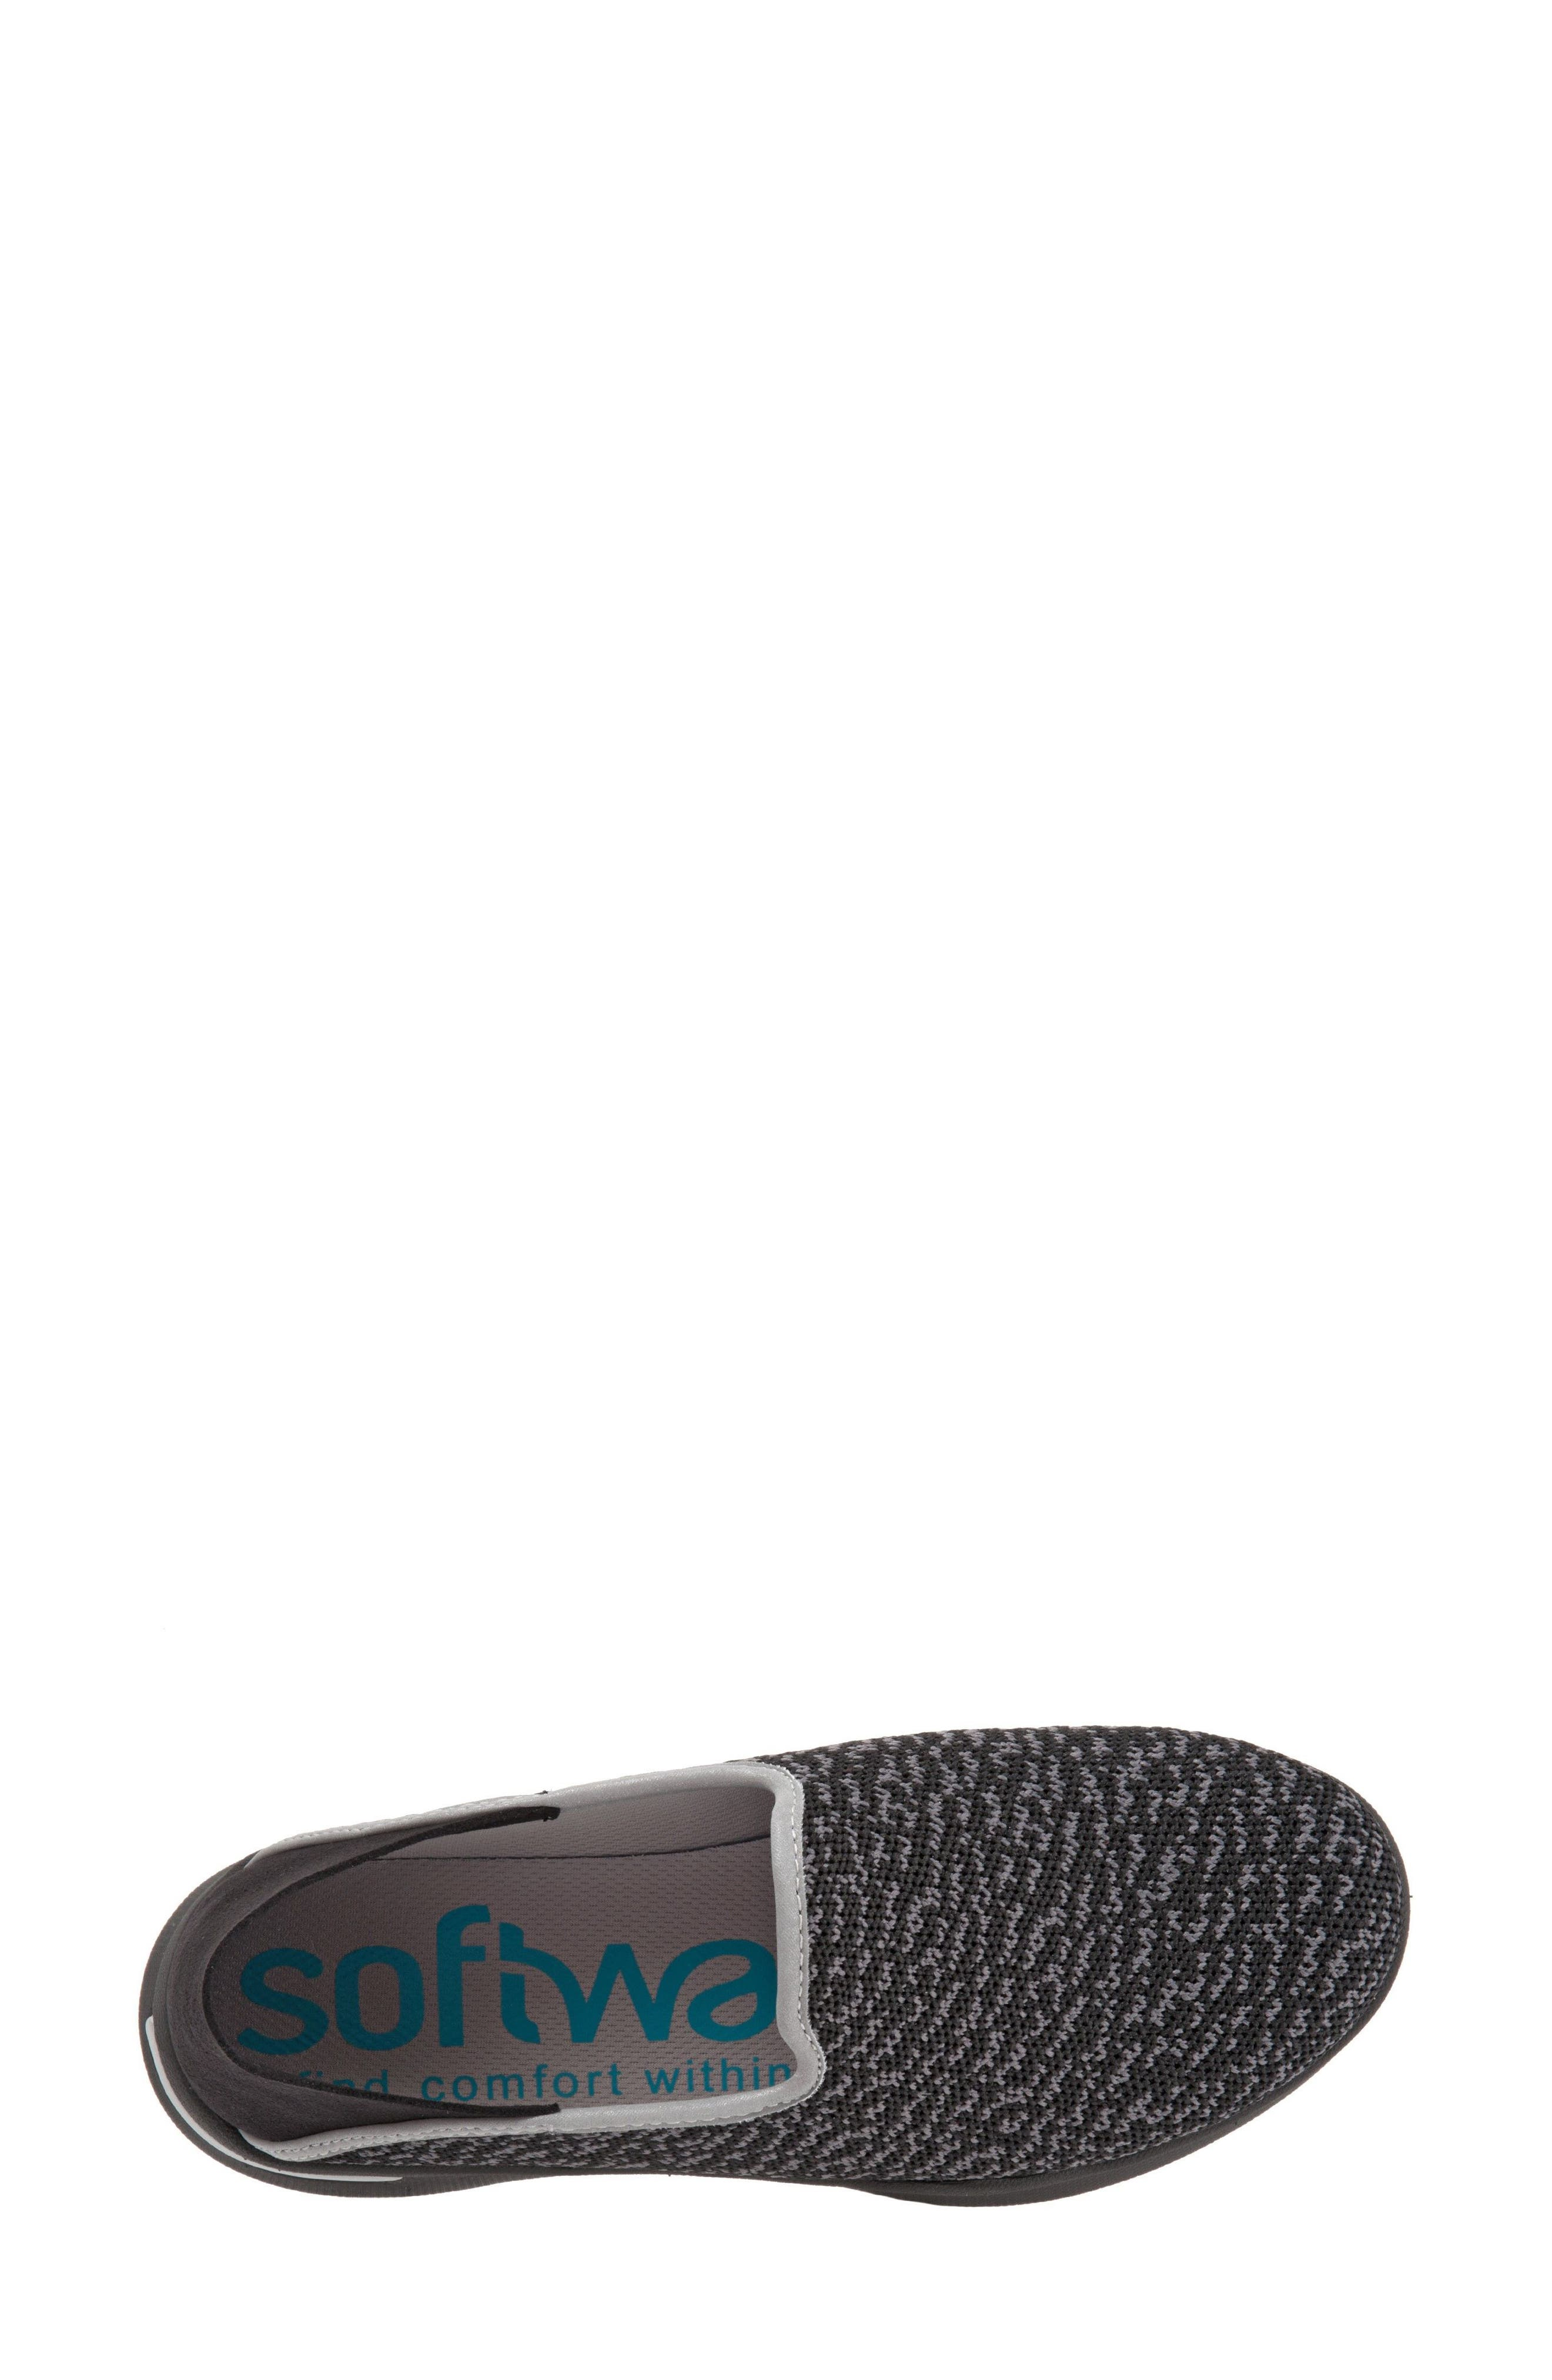 Simba Convertible Slip-On,                             Alternate thumbnail 6, color,                             BLACK FABRIC